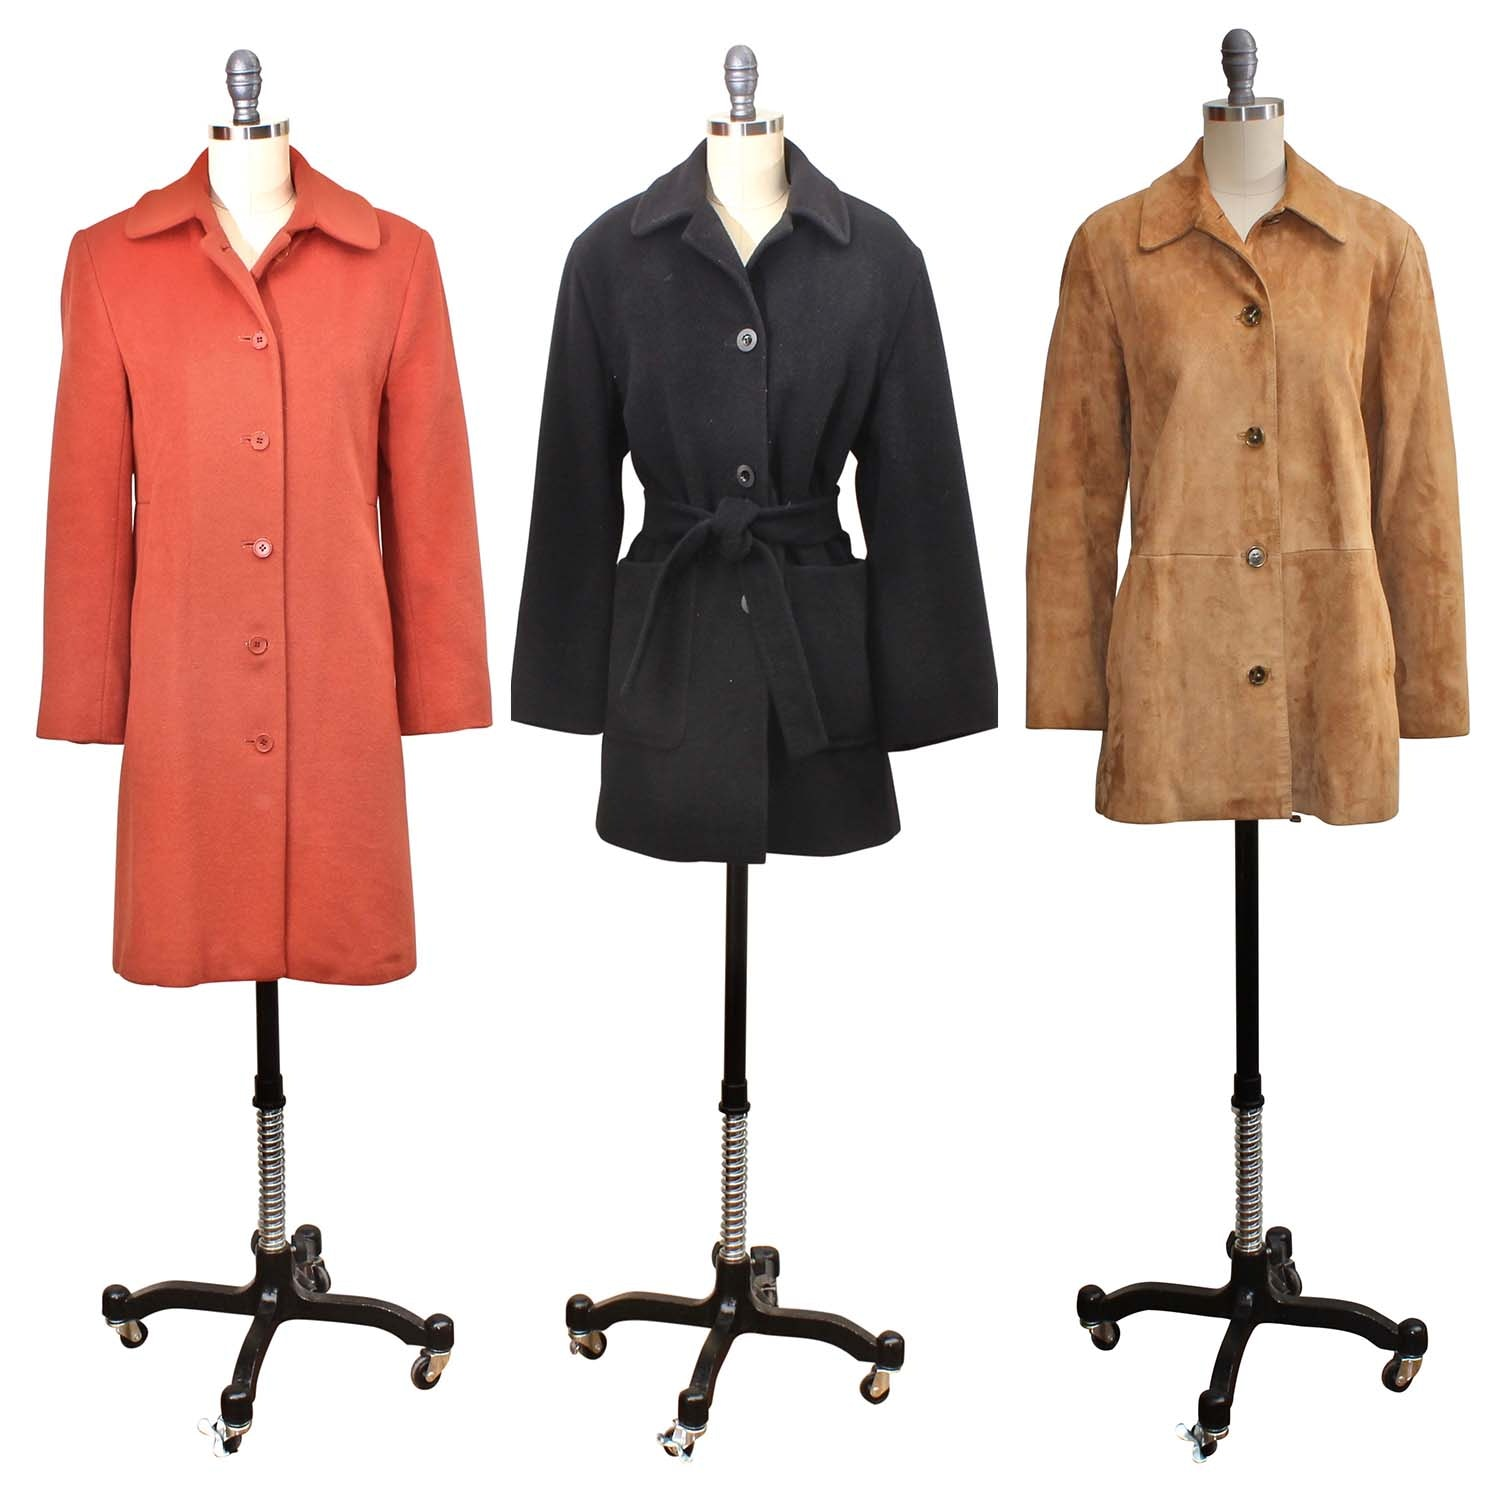 Women's Coats Including Cinzia Rocca, S by Searle and Banana Republic